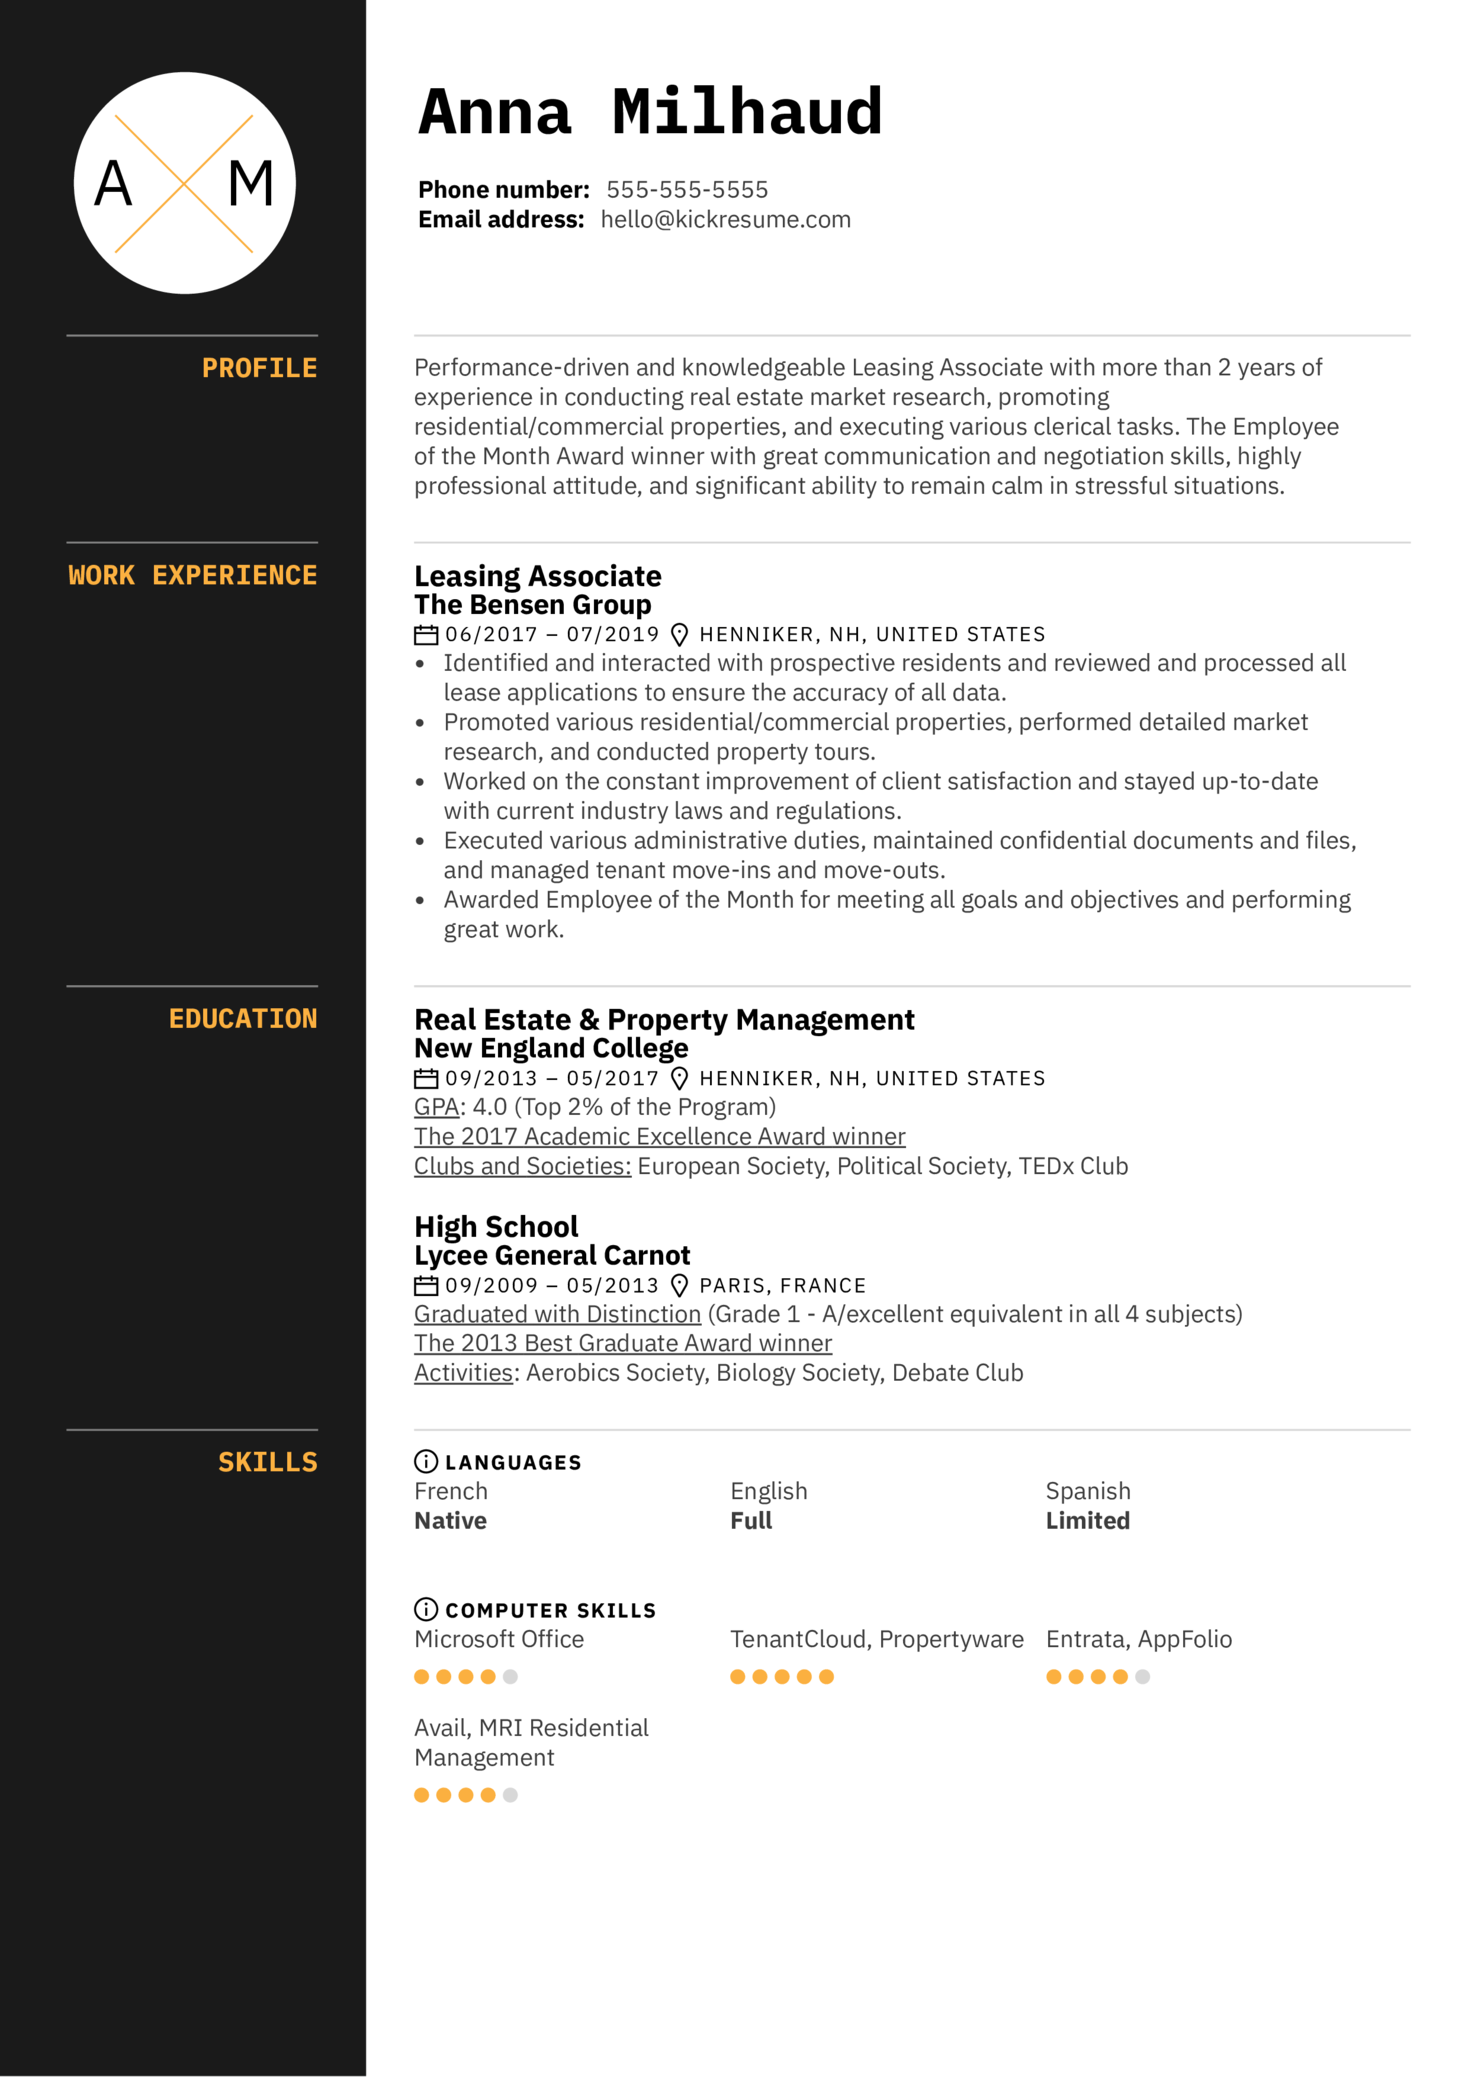 Leasing Associate Resume Sample Kickresume